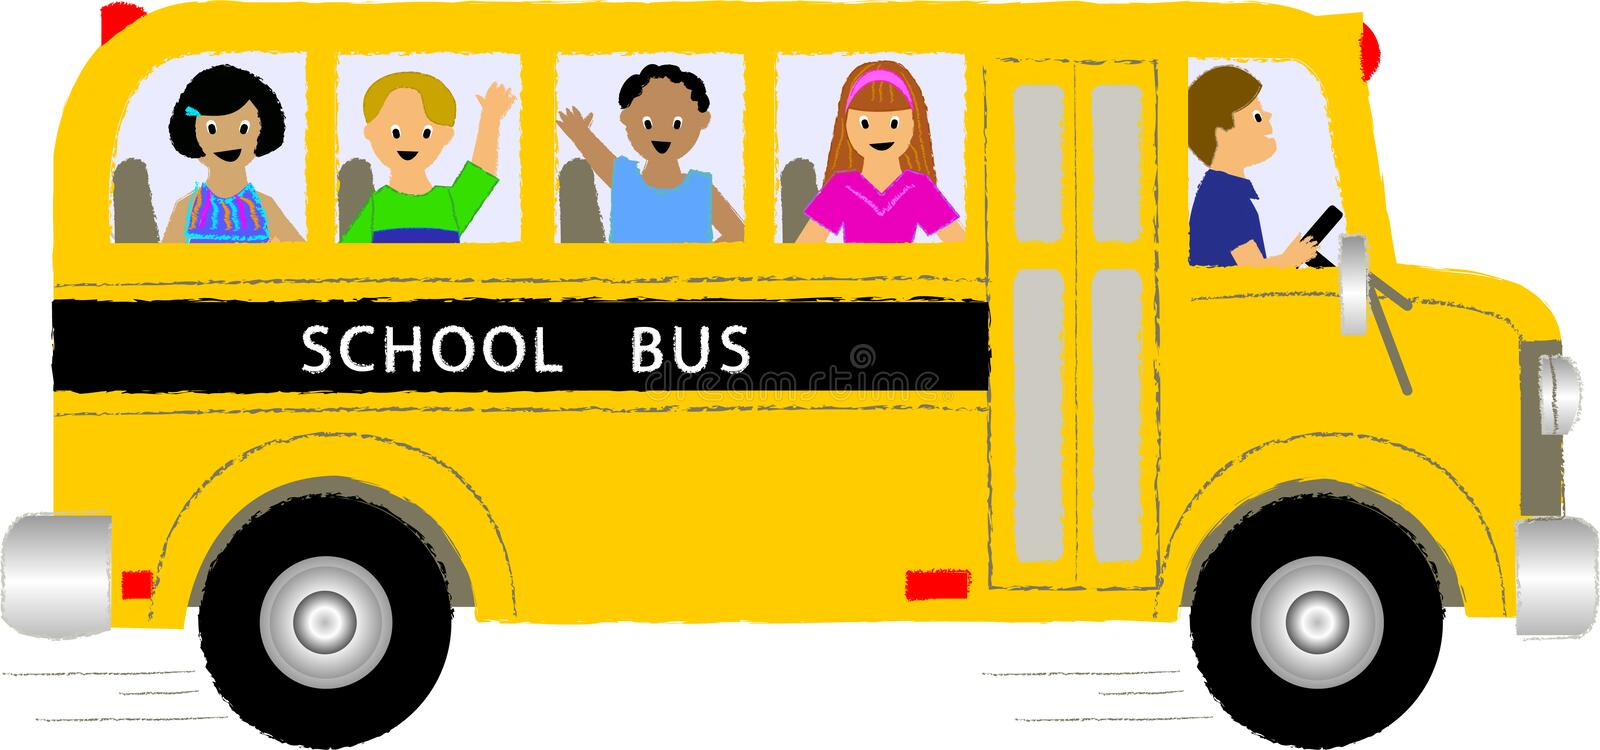 Enfants d'autobus scolaire illustration stock